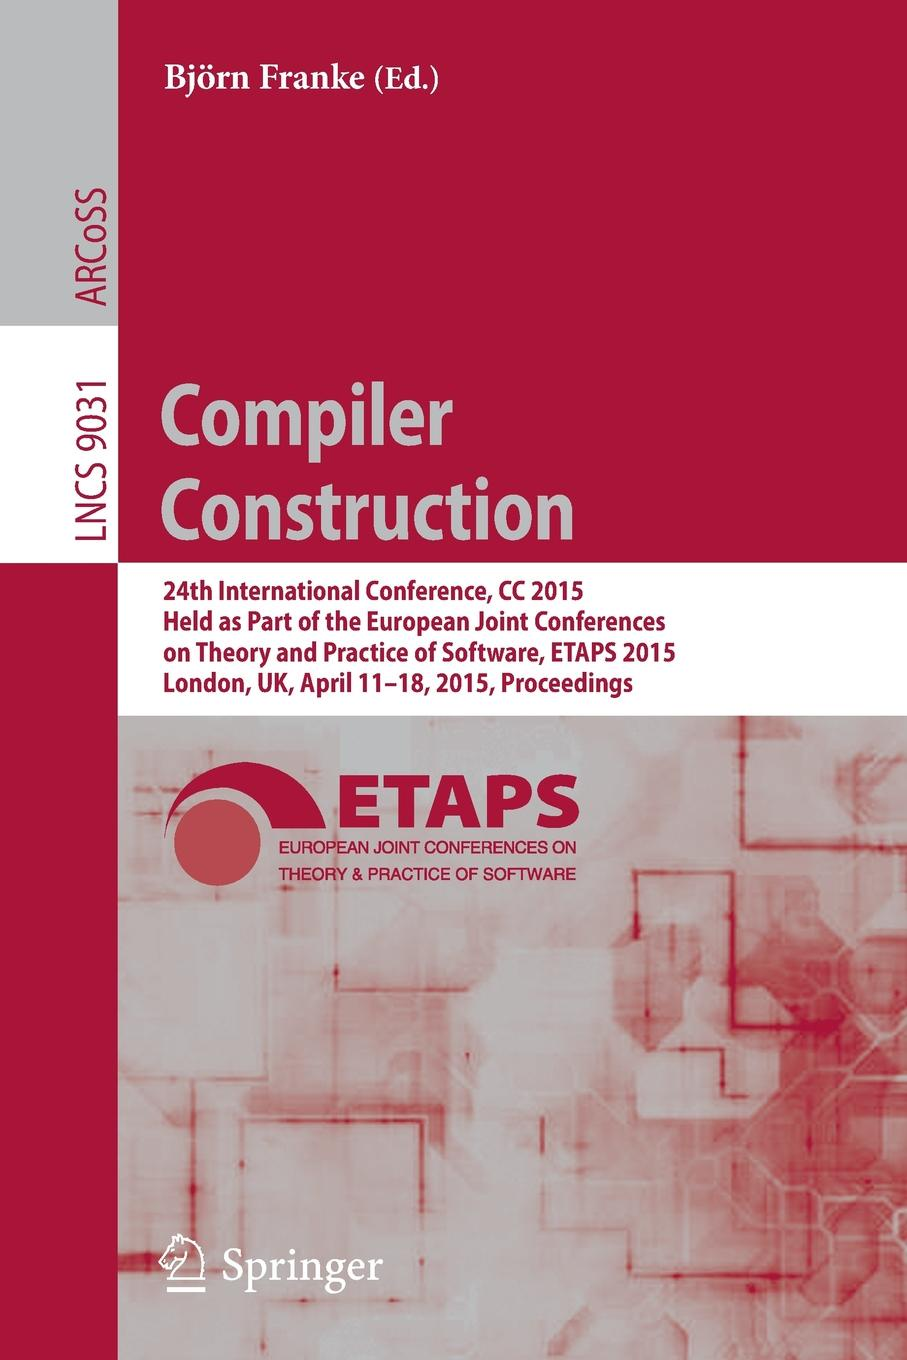 Compiler Construction. 24th International Conference, CC 2015, Held as Part of the European Joint Conferences on Theory and Practice of Software, ETAPS 2015, London, UK, April 11-18, 2015, Proceedings все цены